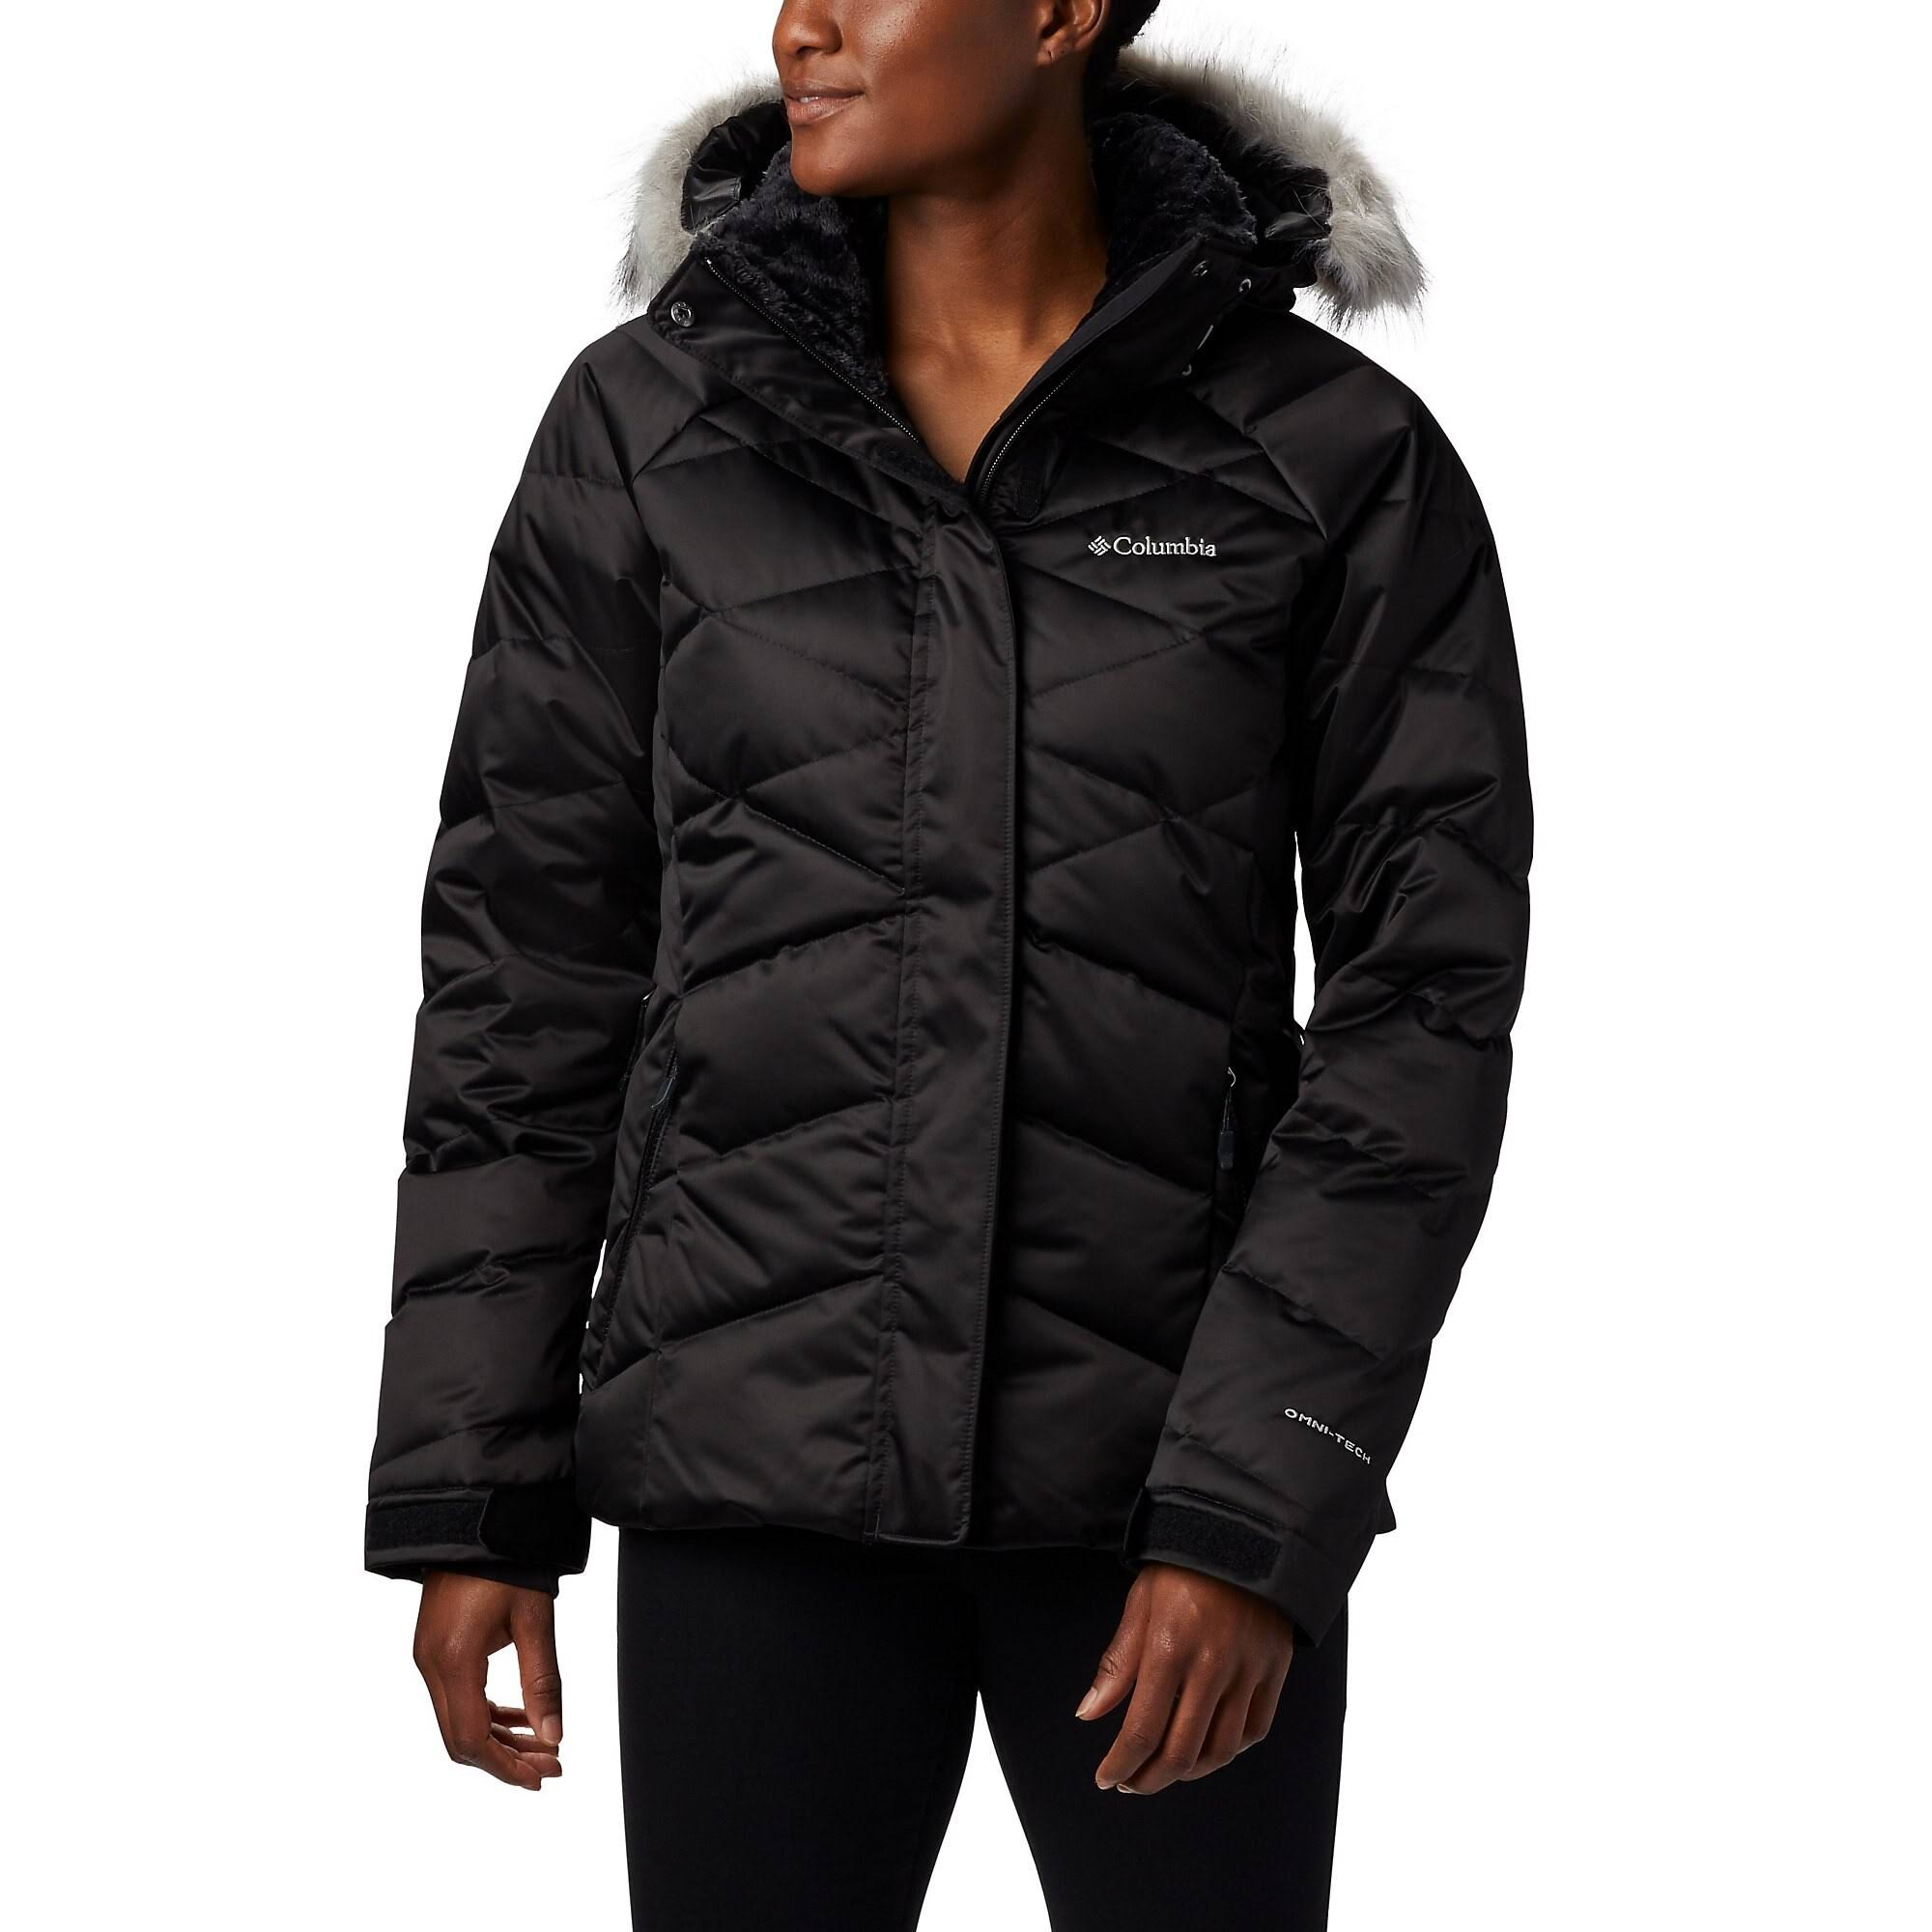 Columbia Women's Lay D Down II Jacket - M - Black